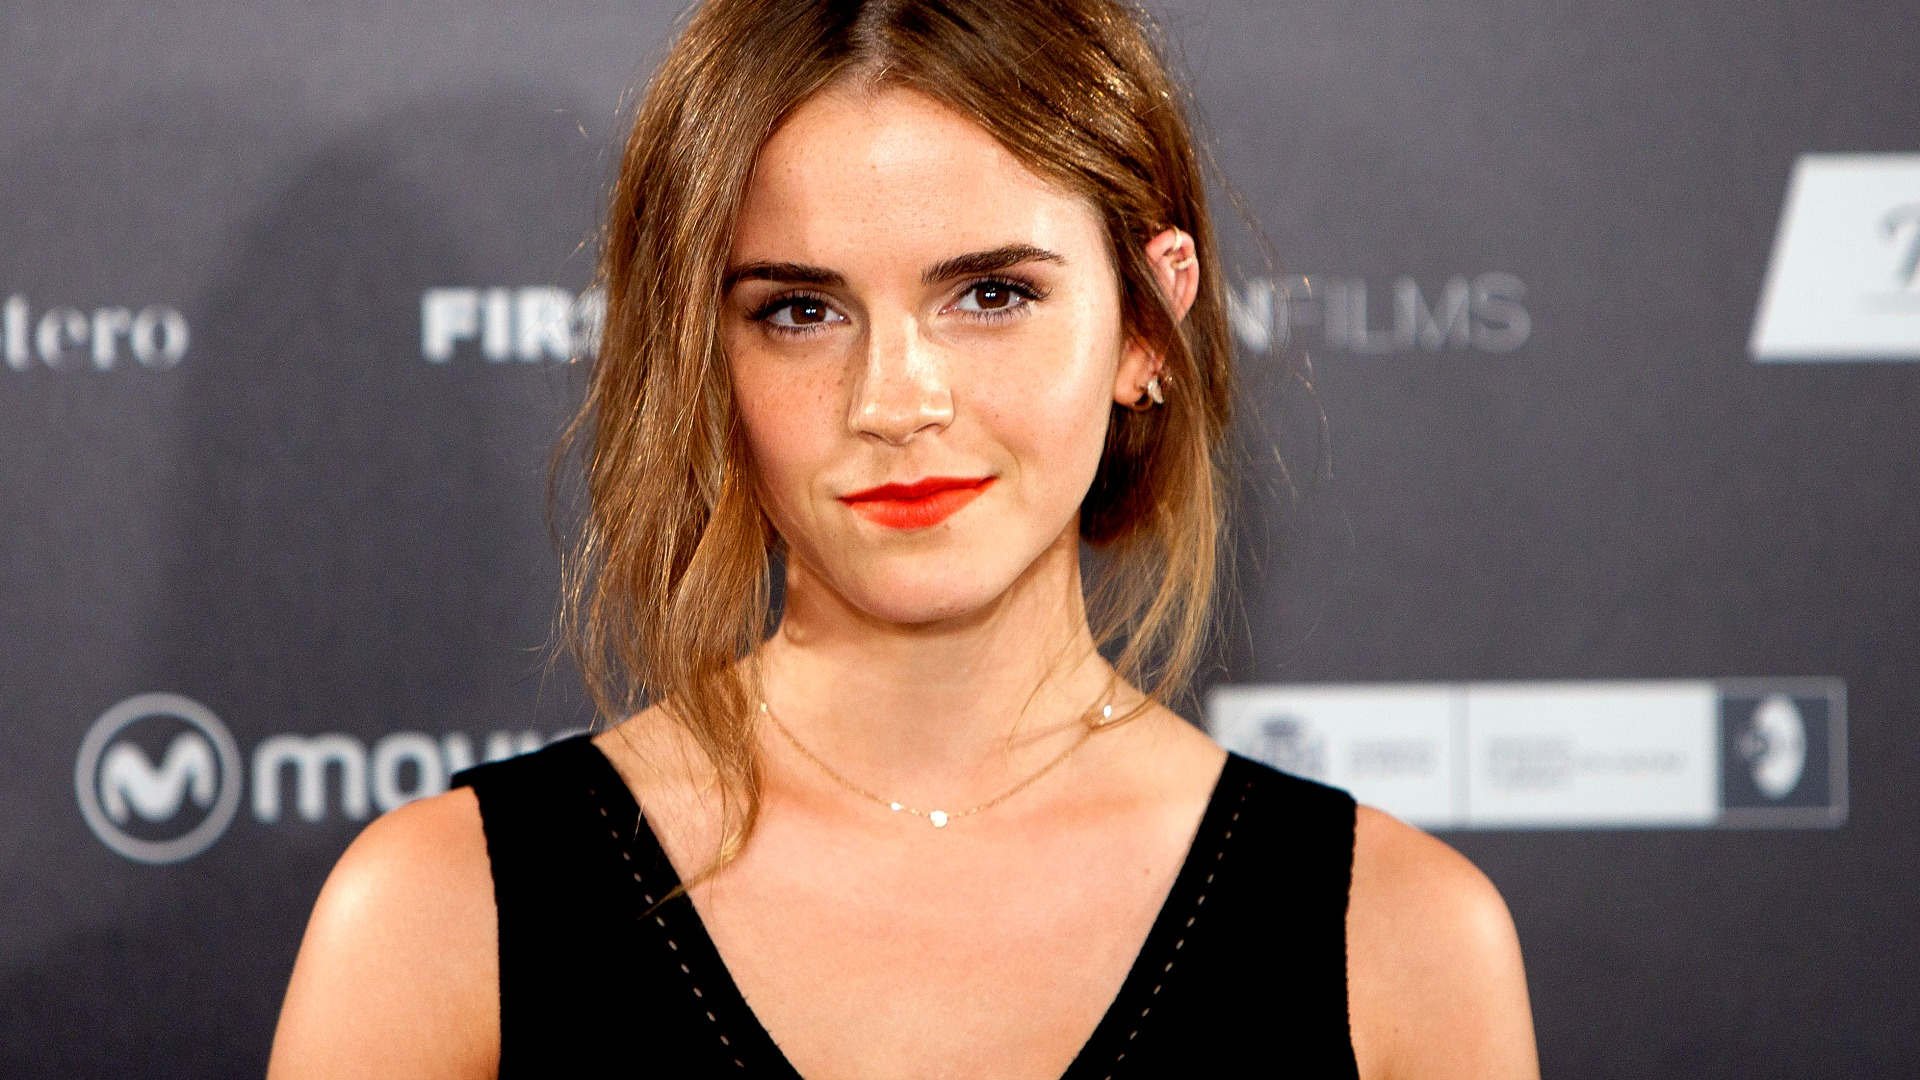 Emma Watson: whatever happened to the Harry Potter actress?